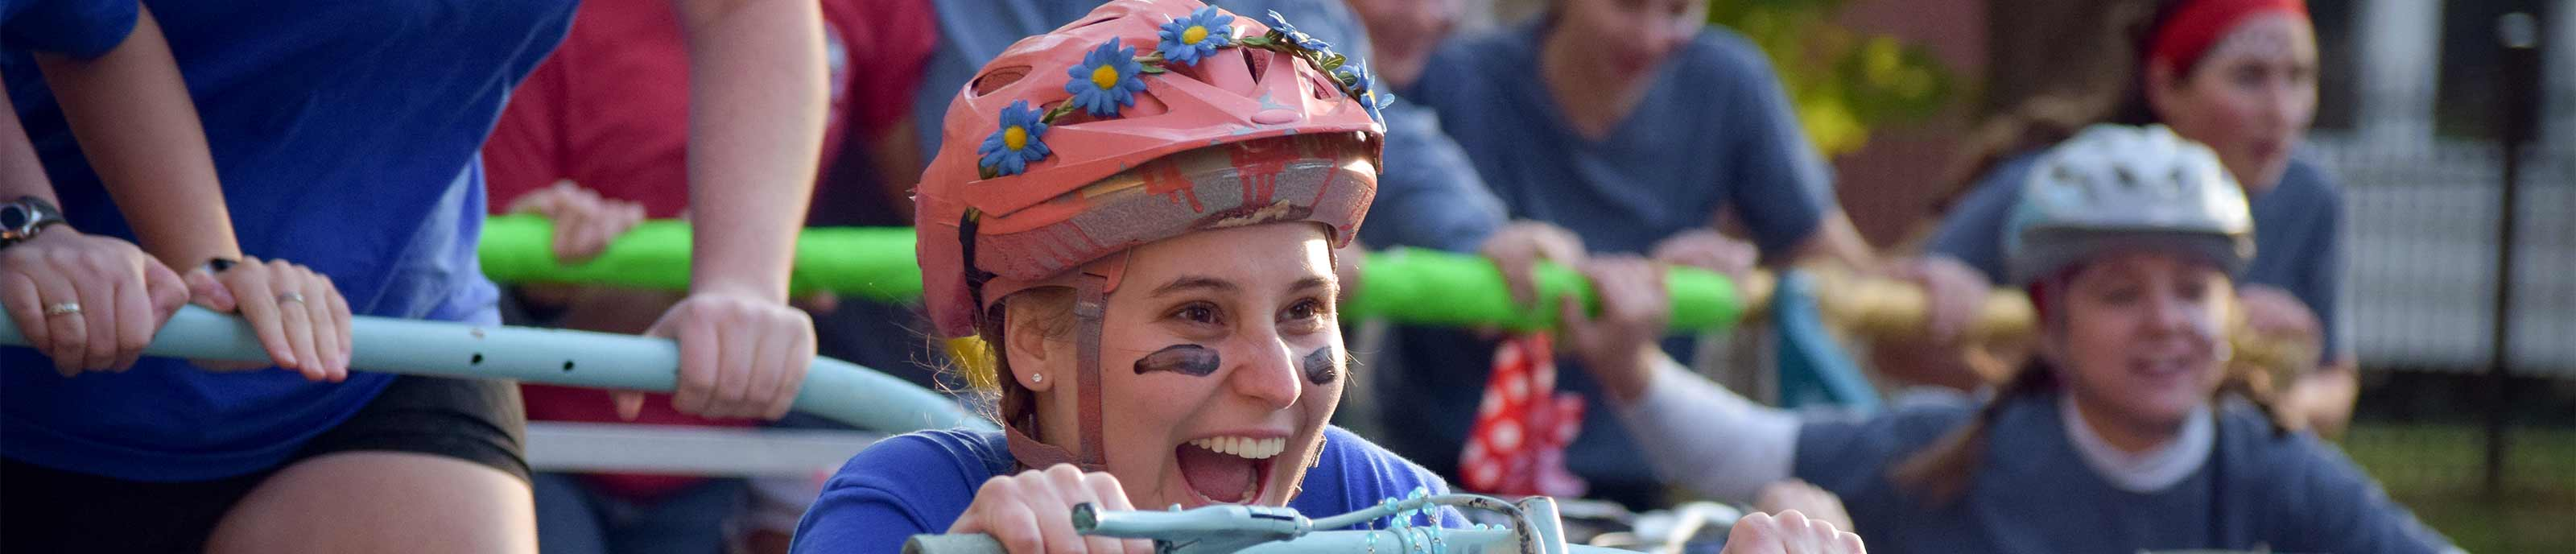 Student having fun riding in a bed at bed races